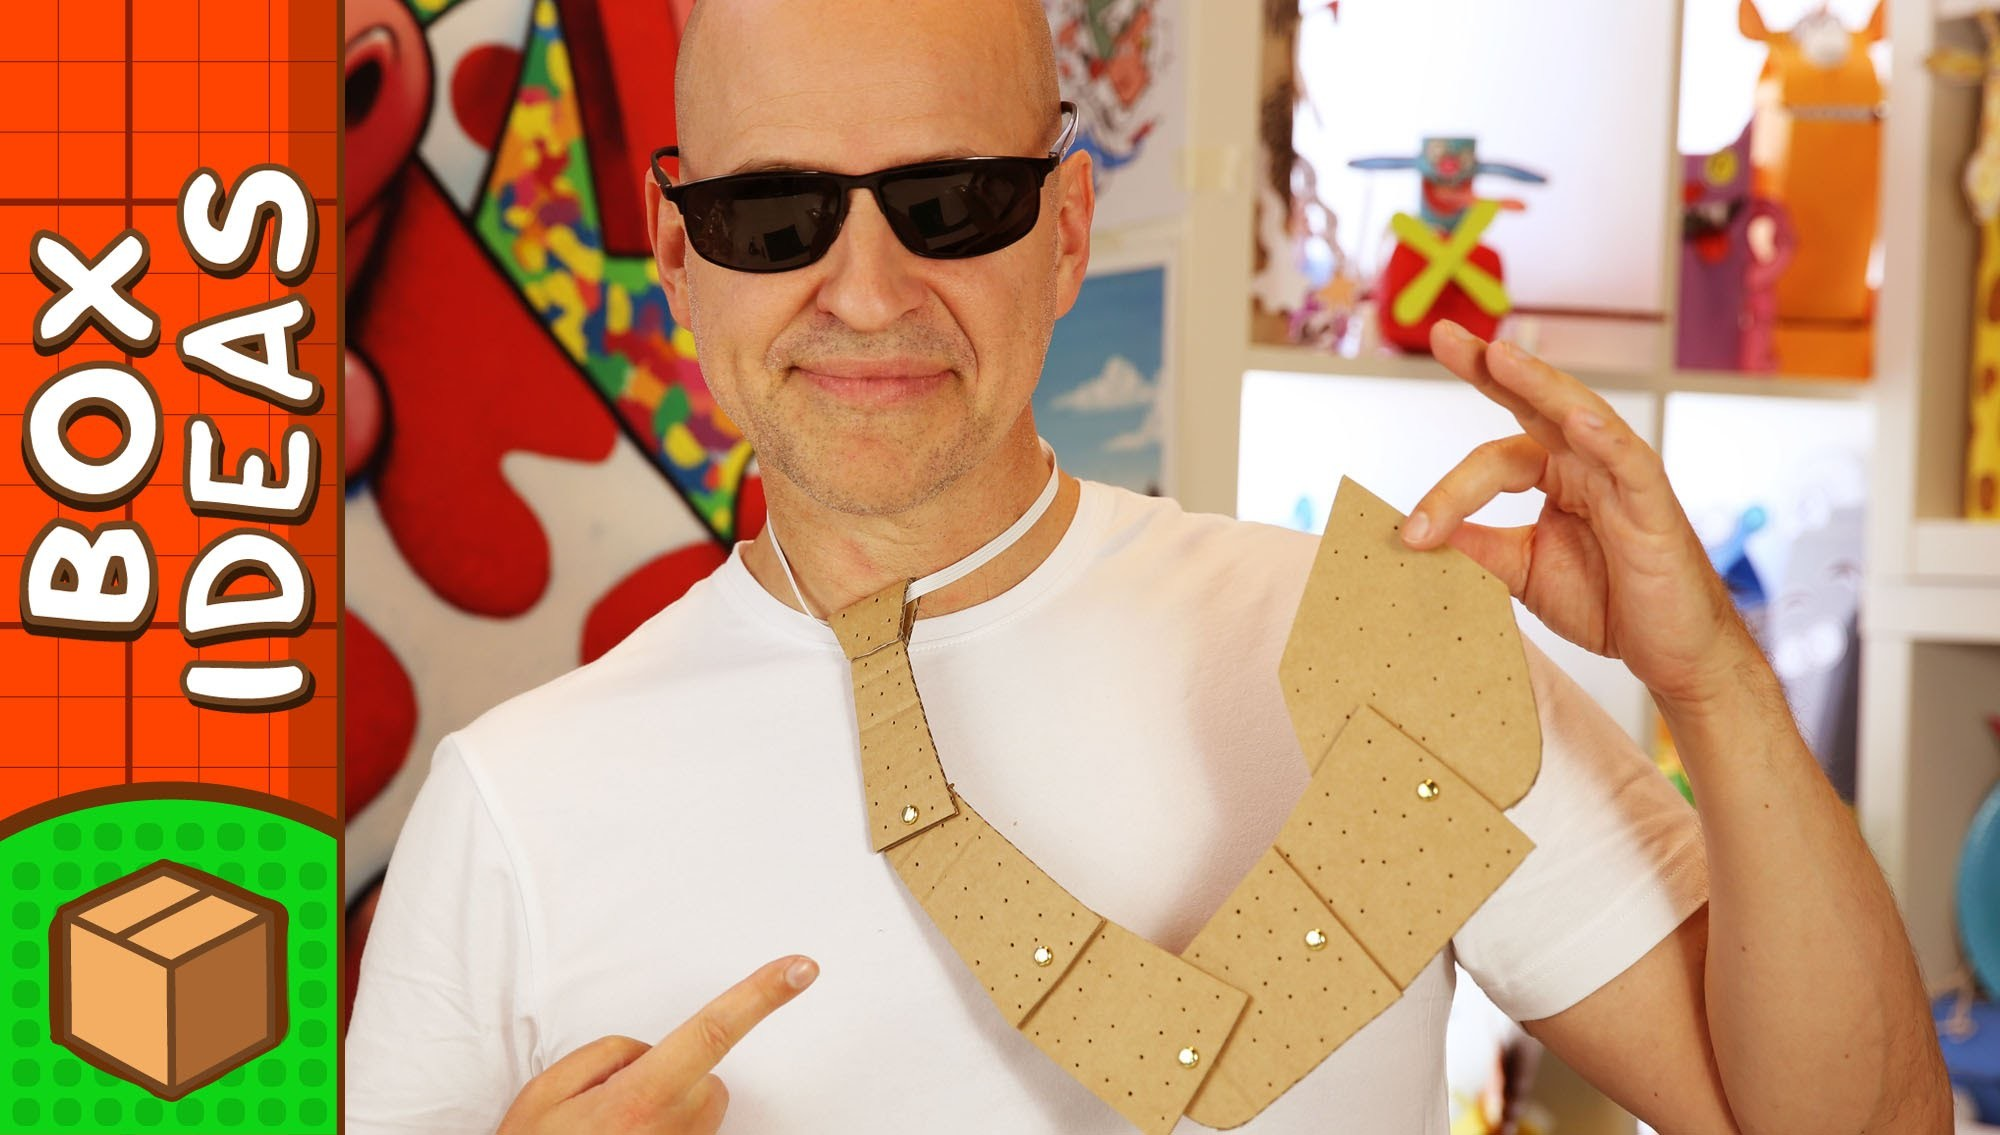 DIY Father's Day Crafts - Cardboard Tie   Craft Ideas for Kids on Box Yourself